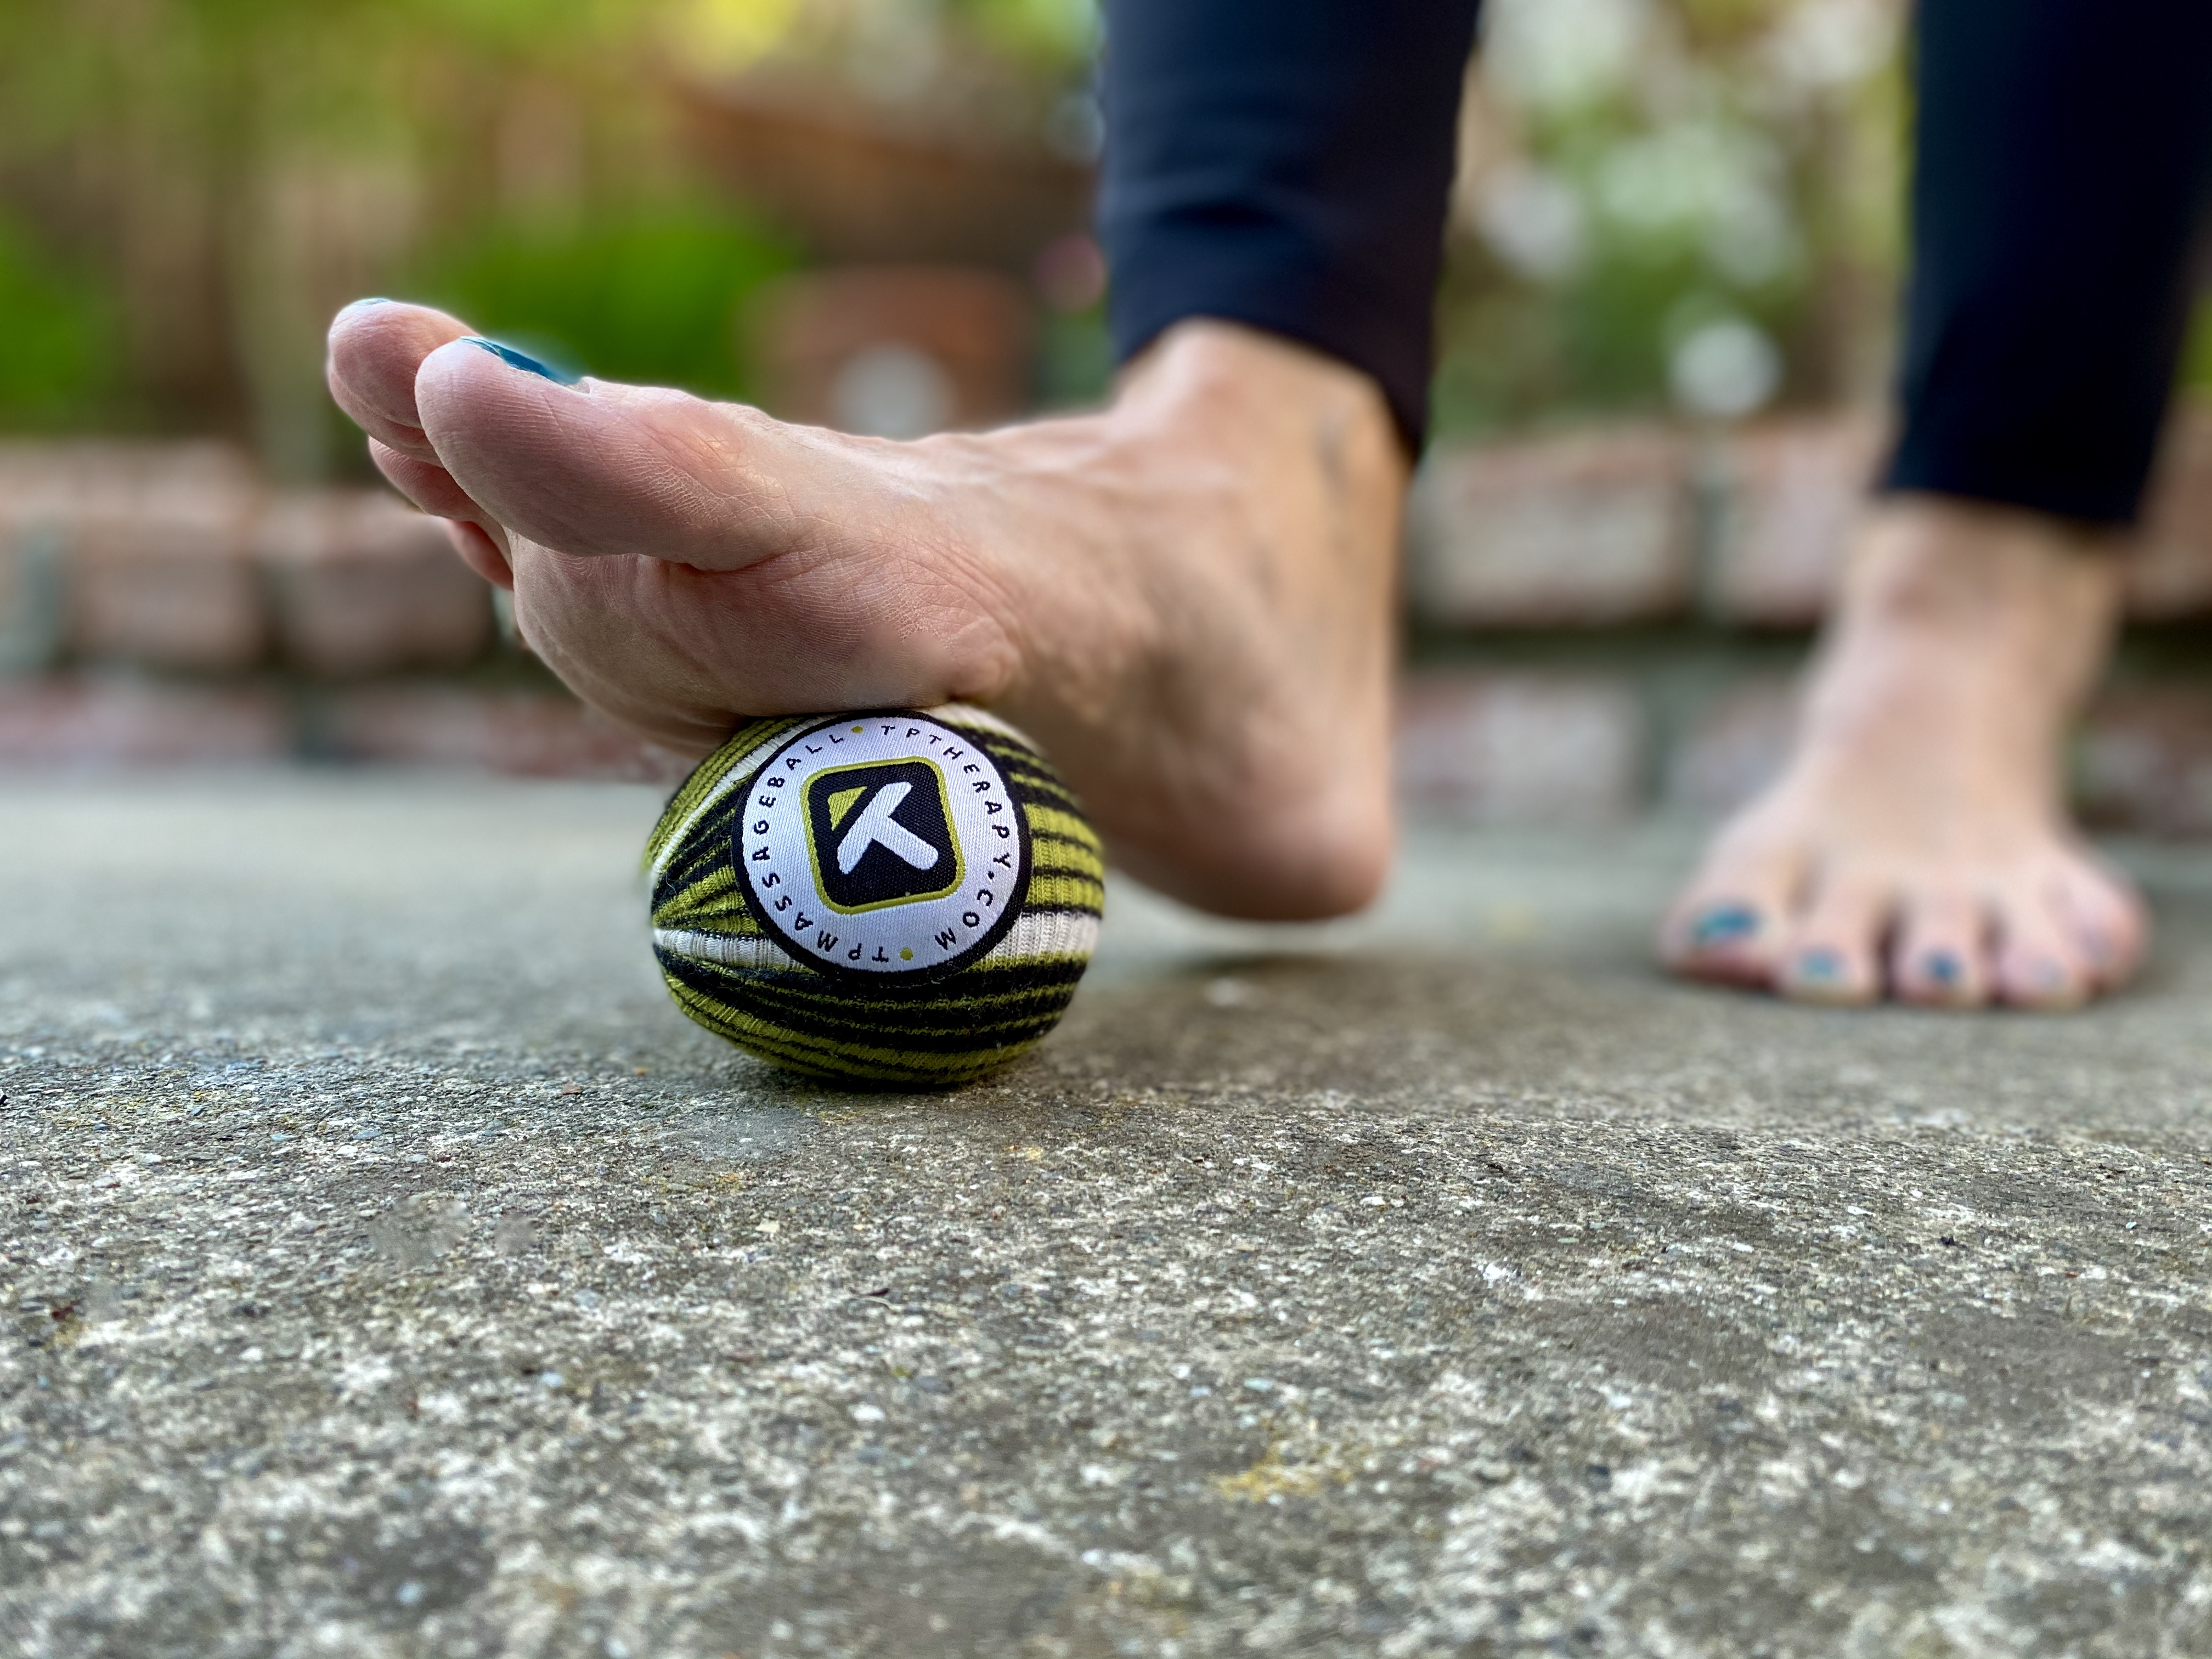 massage therapist's foot on a therapy ball